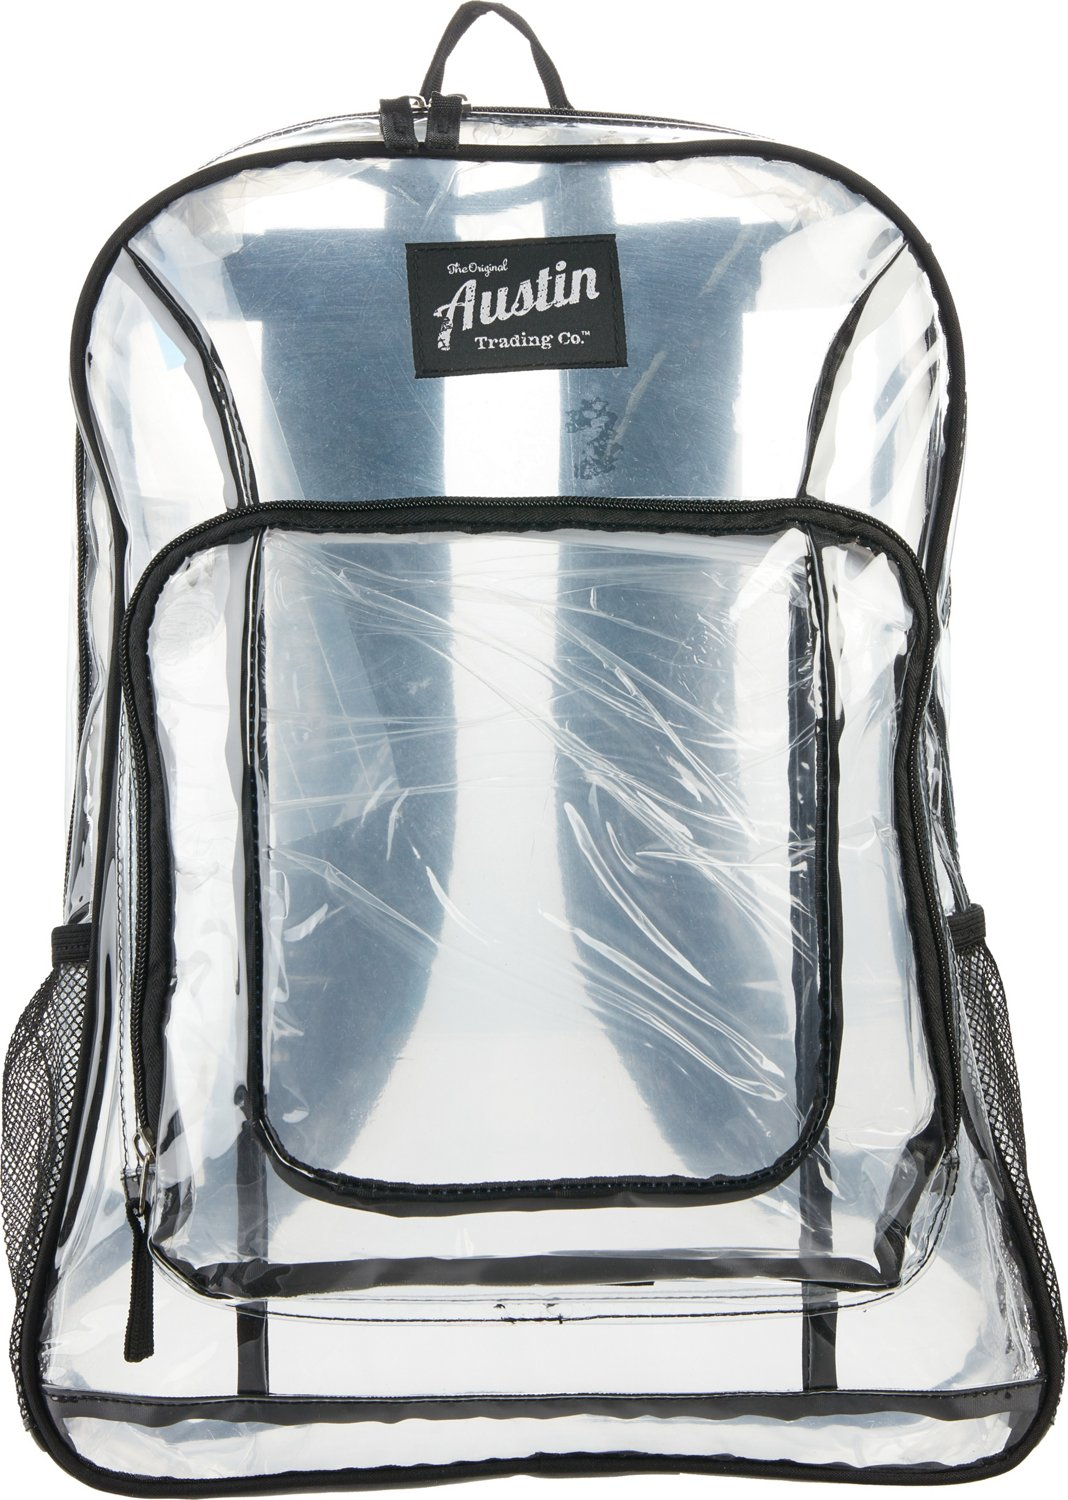 573afeaf3449 Display product reviews for Austin Trading Co. Clear Backpack